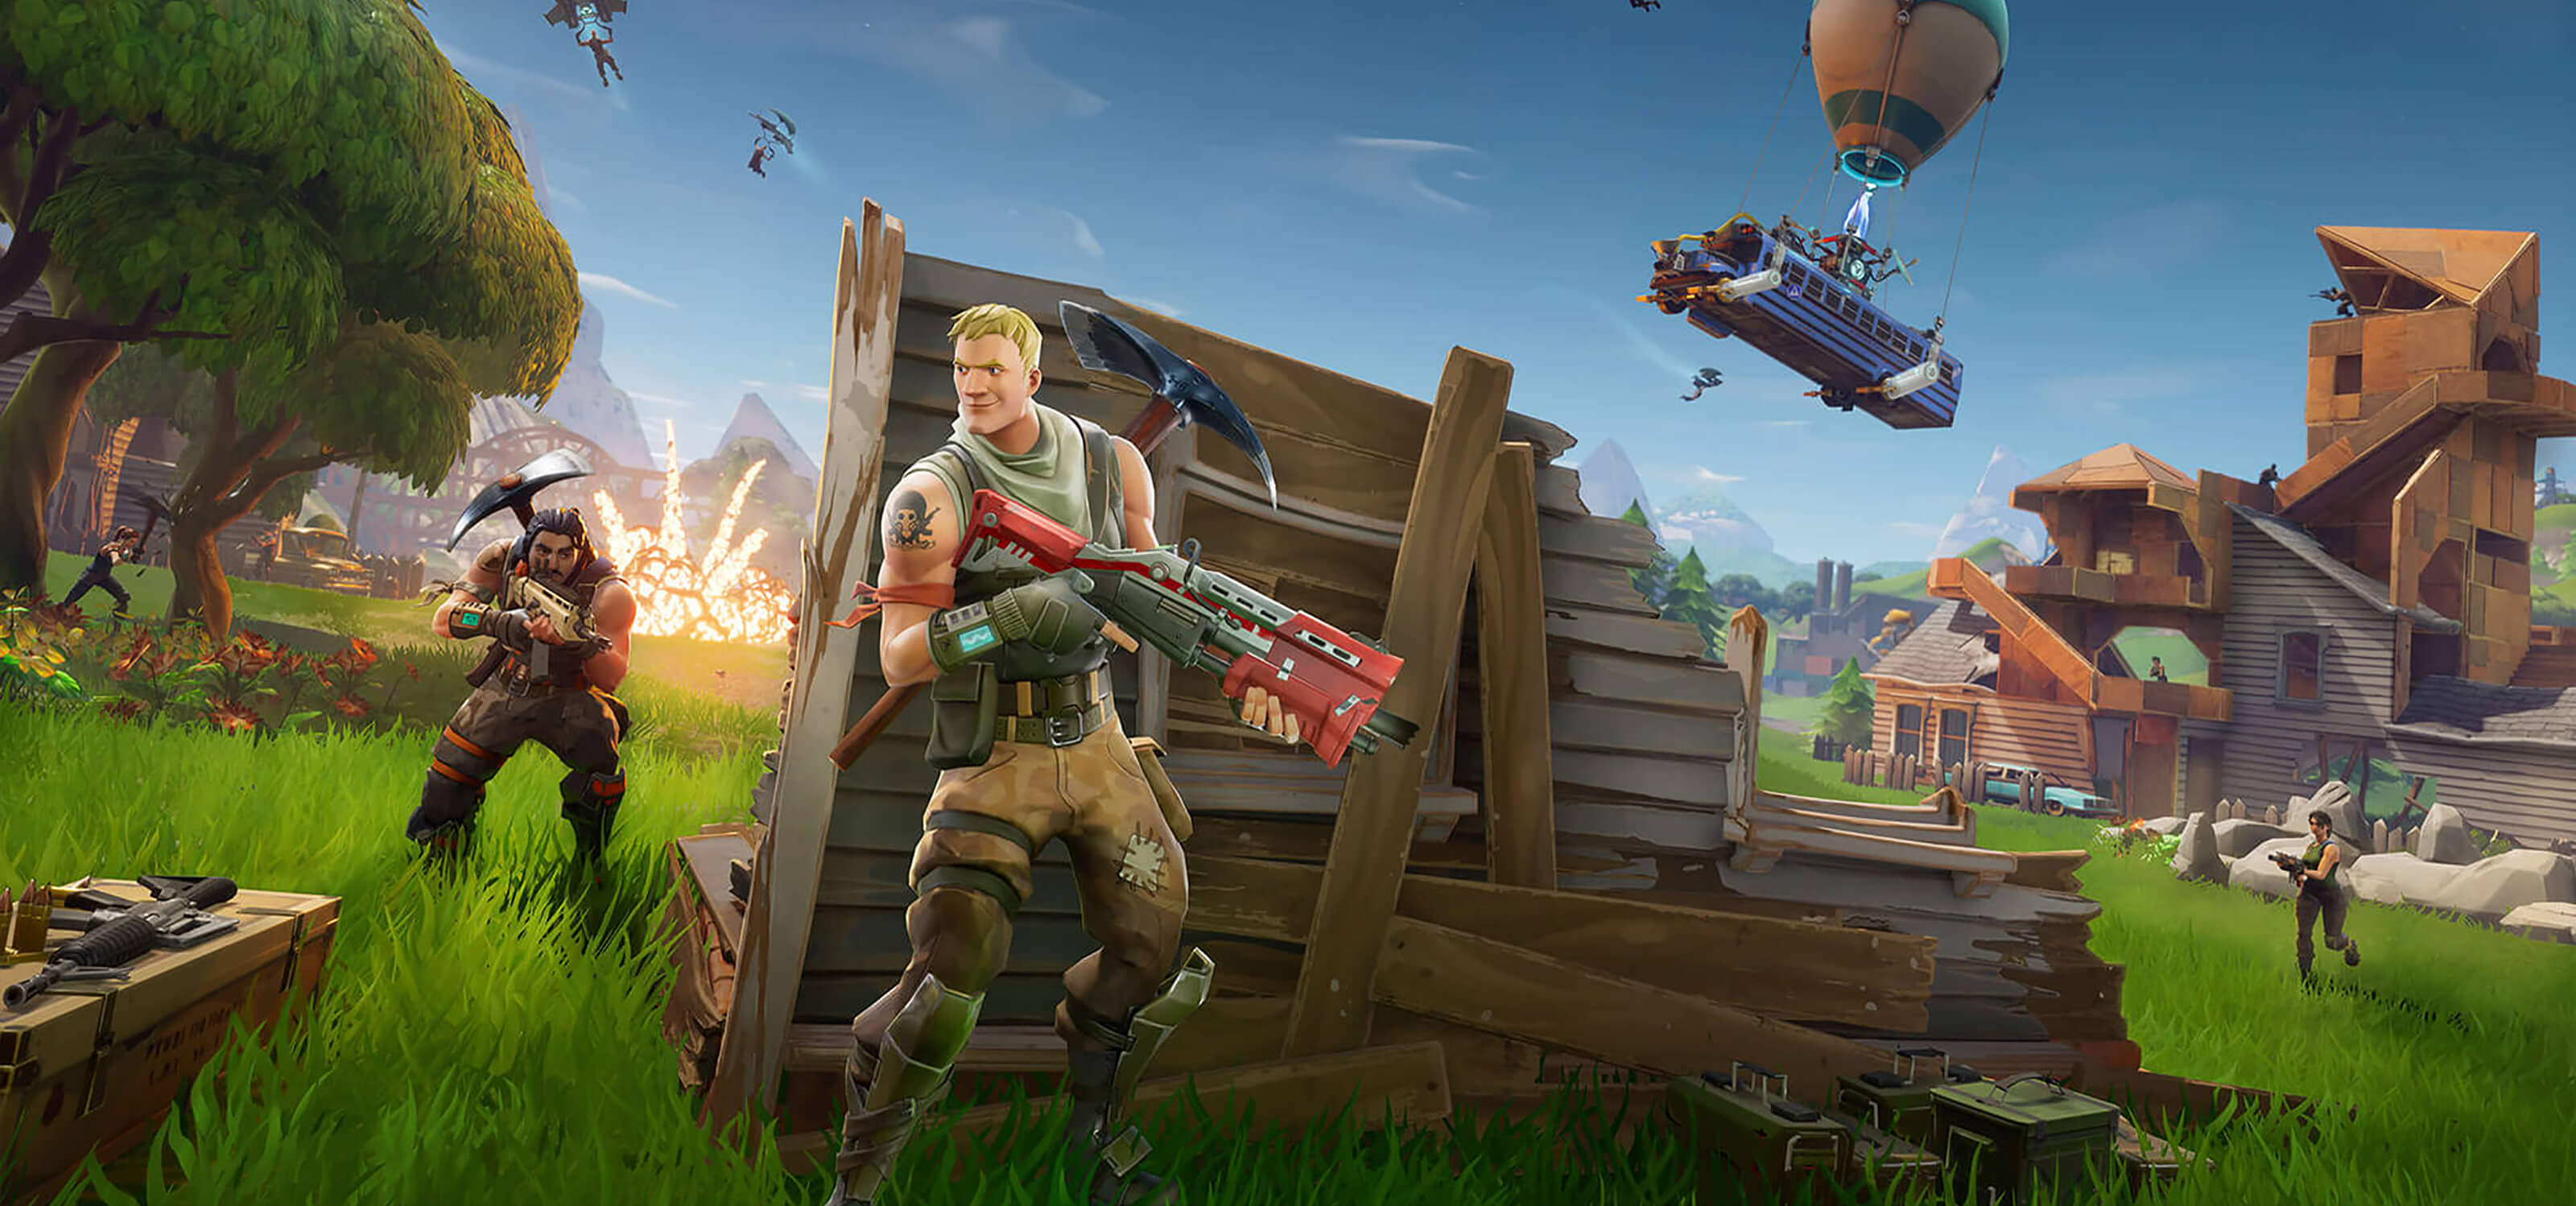 Screenshot from Epic Games' Fortnite featuring a character smiling as he hides behind a wooden barricade